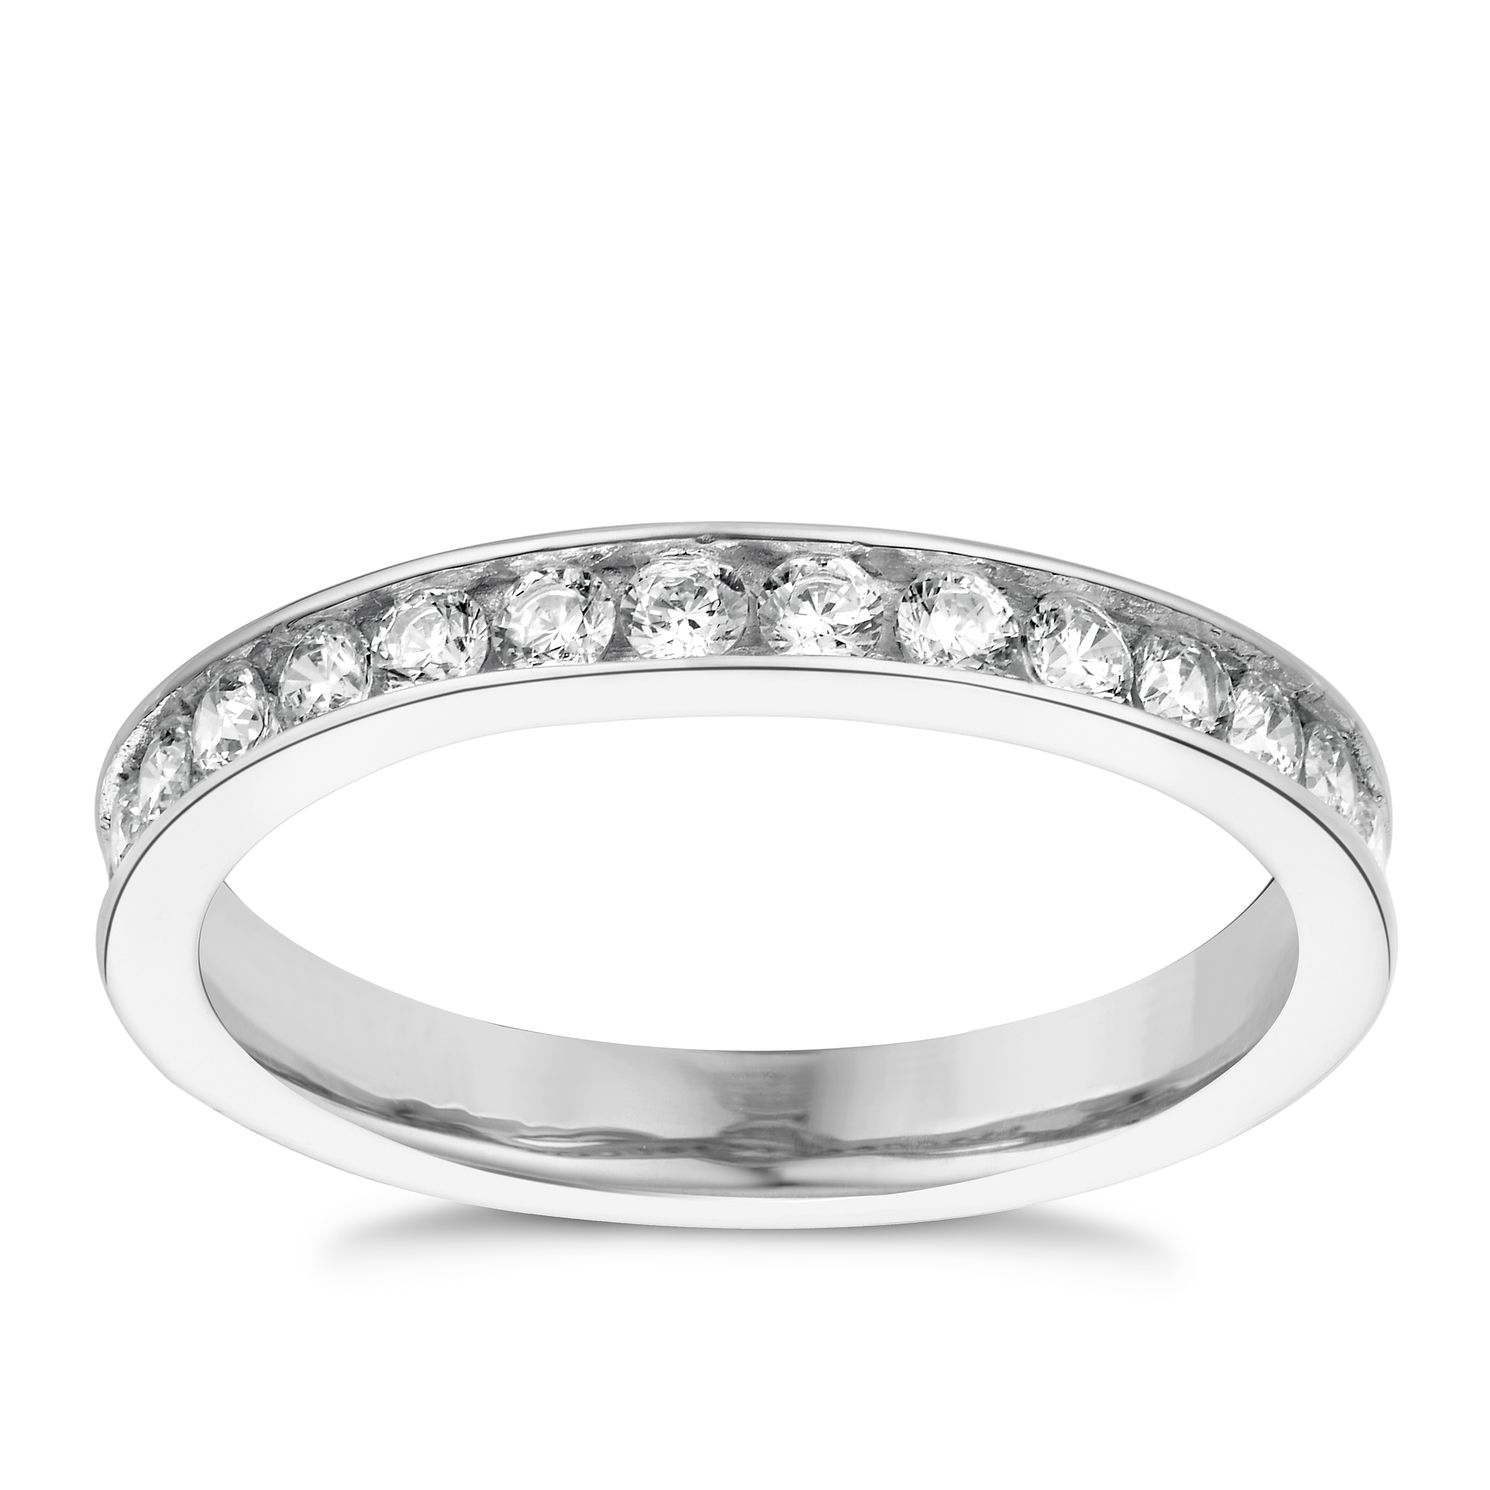 white product cz of silver shop image sterling suzy eternity band cubic levian jewelry zirconia bands